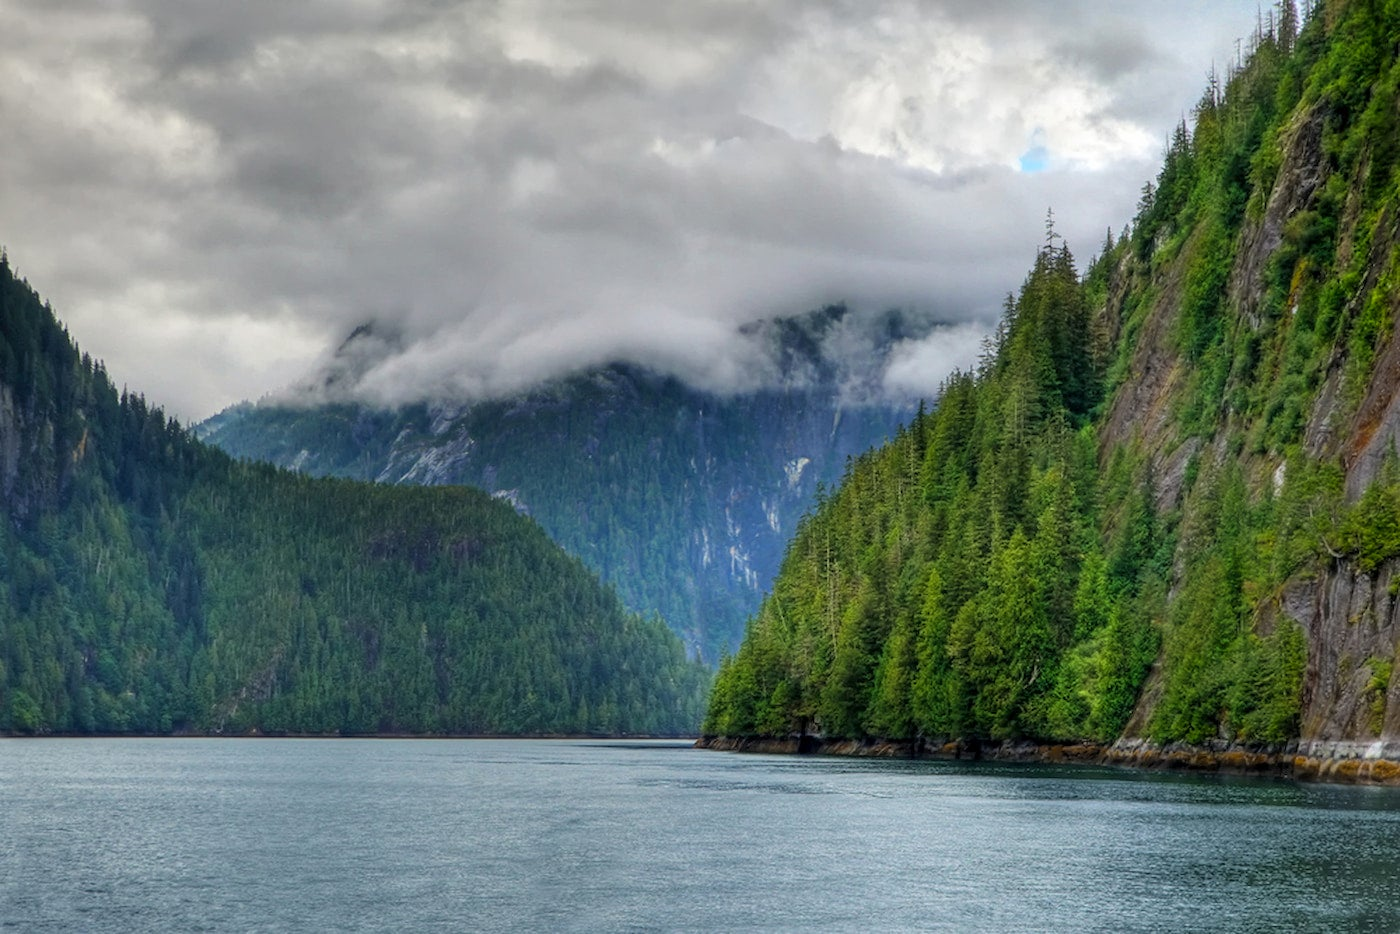 Misty Fjords in Tongass national forest on the coast of Ketchikan Alaska.